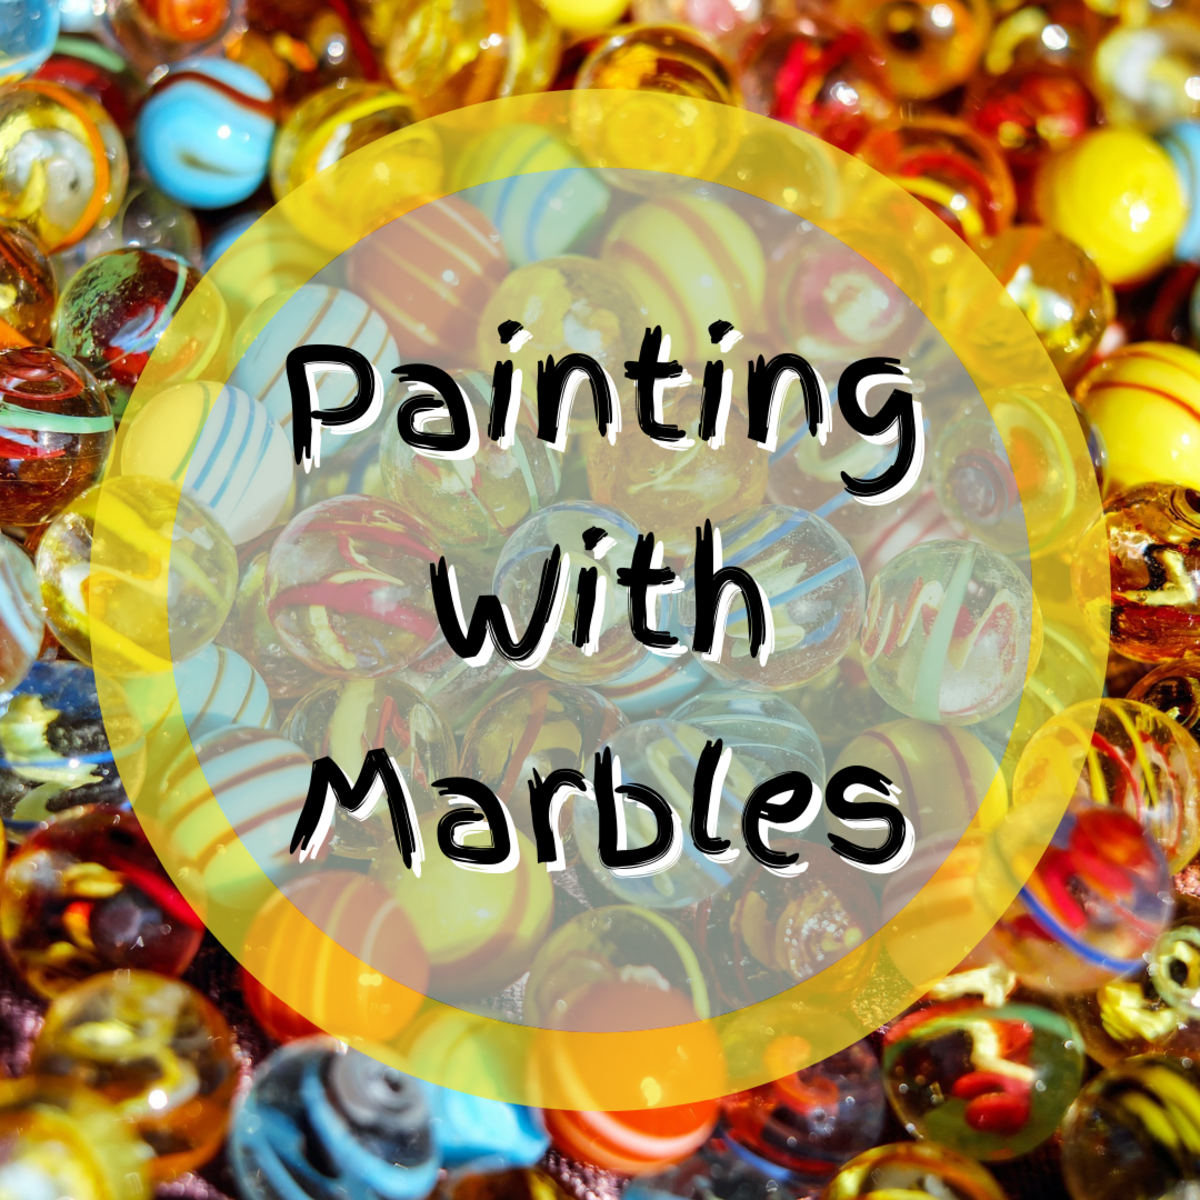 Learn how to create unique painting with marbles using this easy, step-by-step tutorial!